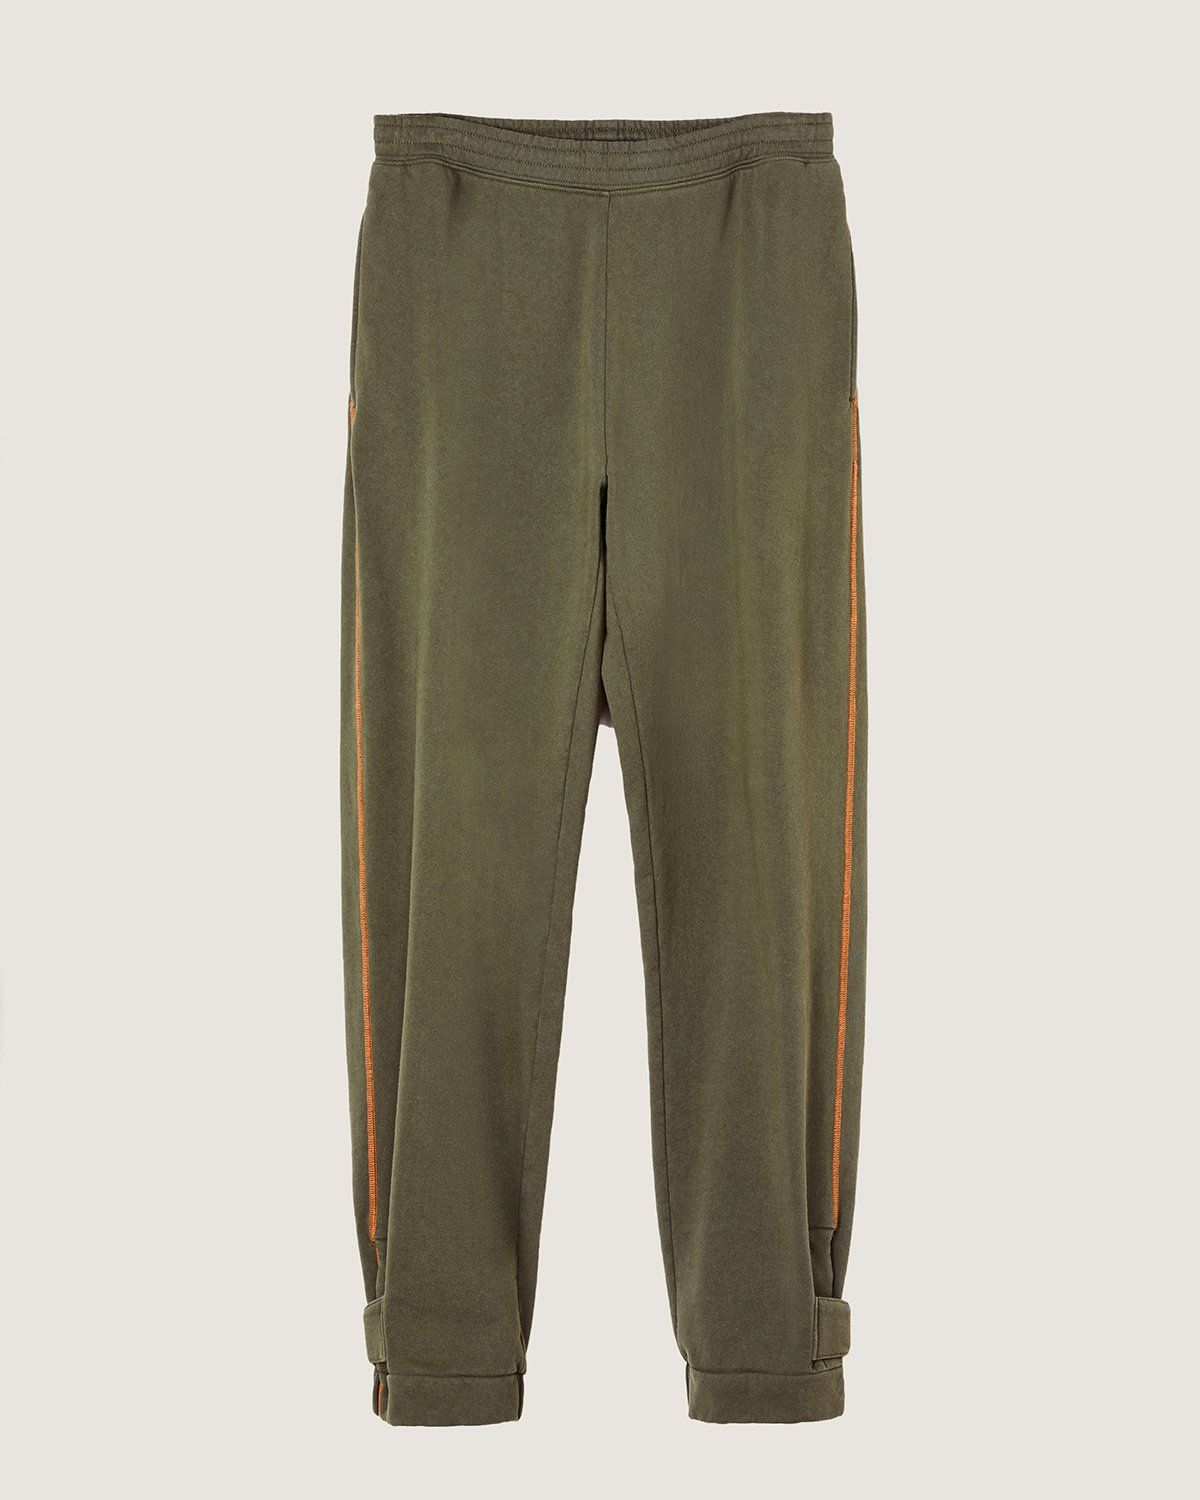 EYE/LOEWE/NATURE FLEECE TROUSERS - Image 1